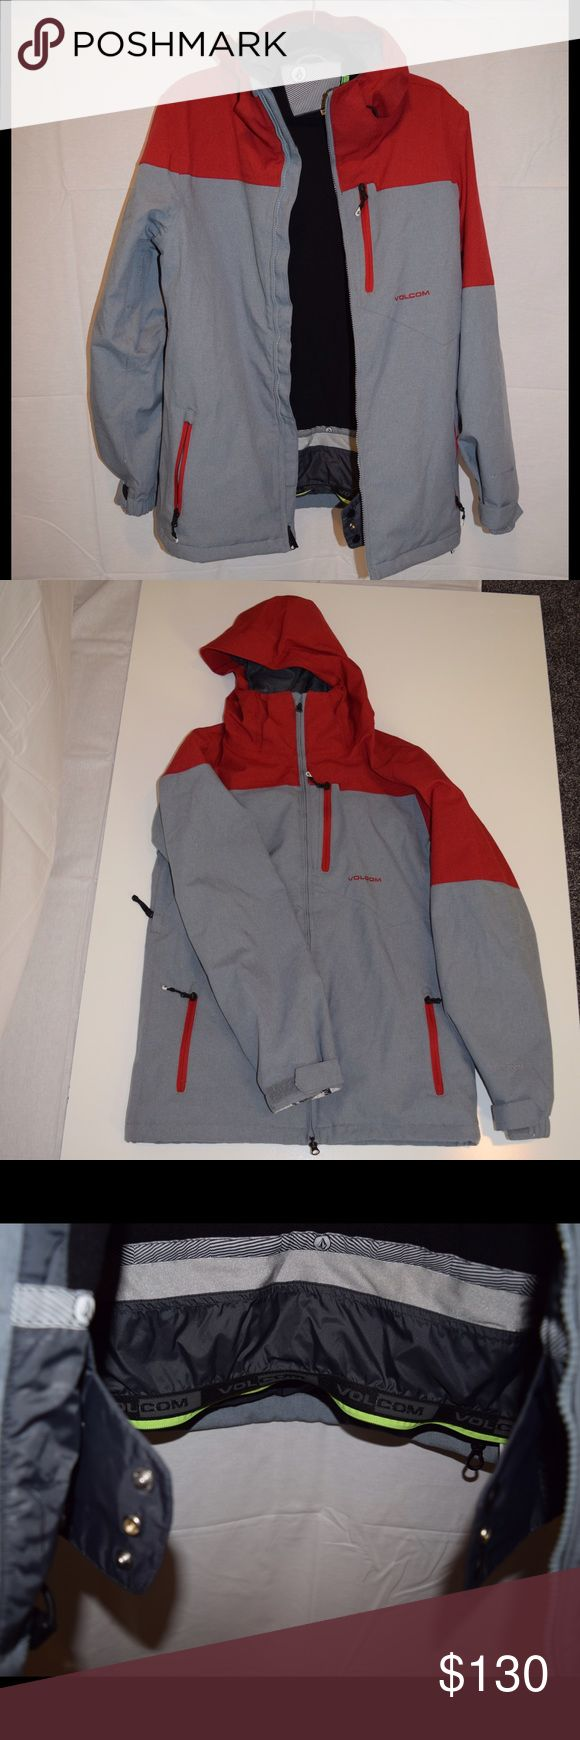 ❄️ VOLCOM Men's Snow Boarding Jacket ❄️ Like New VOLCOM Snow Boarding Jacket. Great Condition, only worn a few times. Lots of zippers and storage compartments. Snow proof bottom with zipper closure to make sure no snow gets under your jacket or in your pants.  ✨Bundle4discounts&better shipping rate 📬 Volcom Jackets & Coats Ski & Snowboard